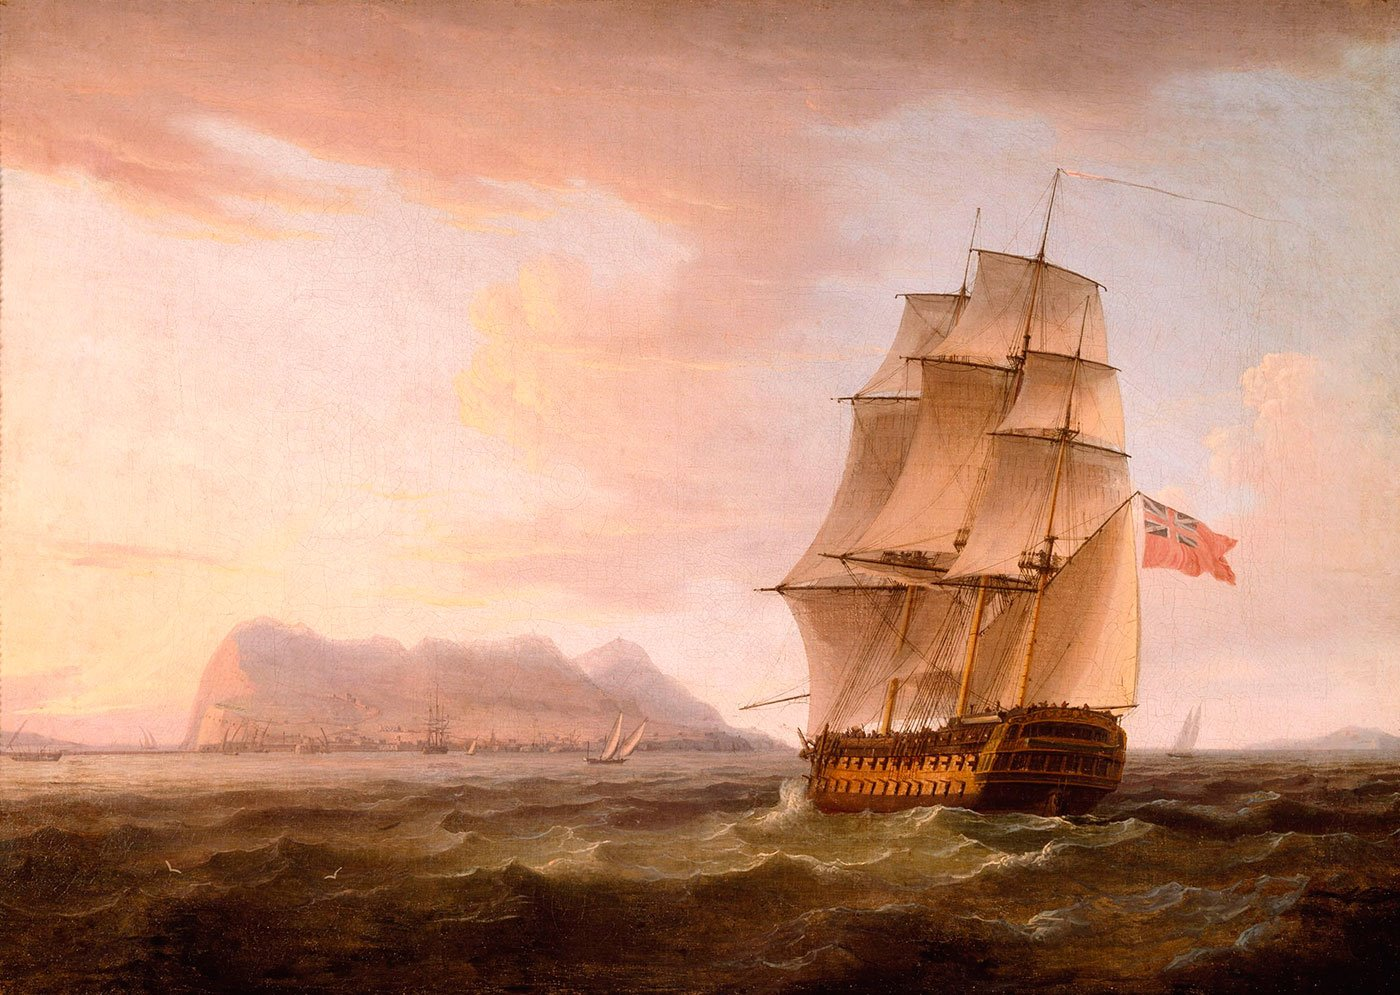 3A British Man of War before the Rock of Gibraltar by Thomas Whitcombe. Navío de guerra británico frente al peñón de Gibraltar, por Thomas Whitcombe. 1800, Denver Art Museum